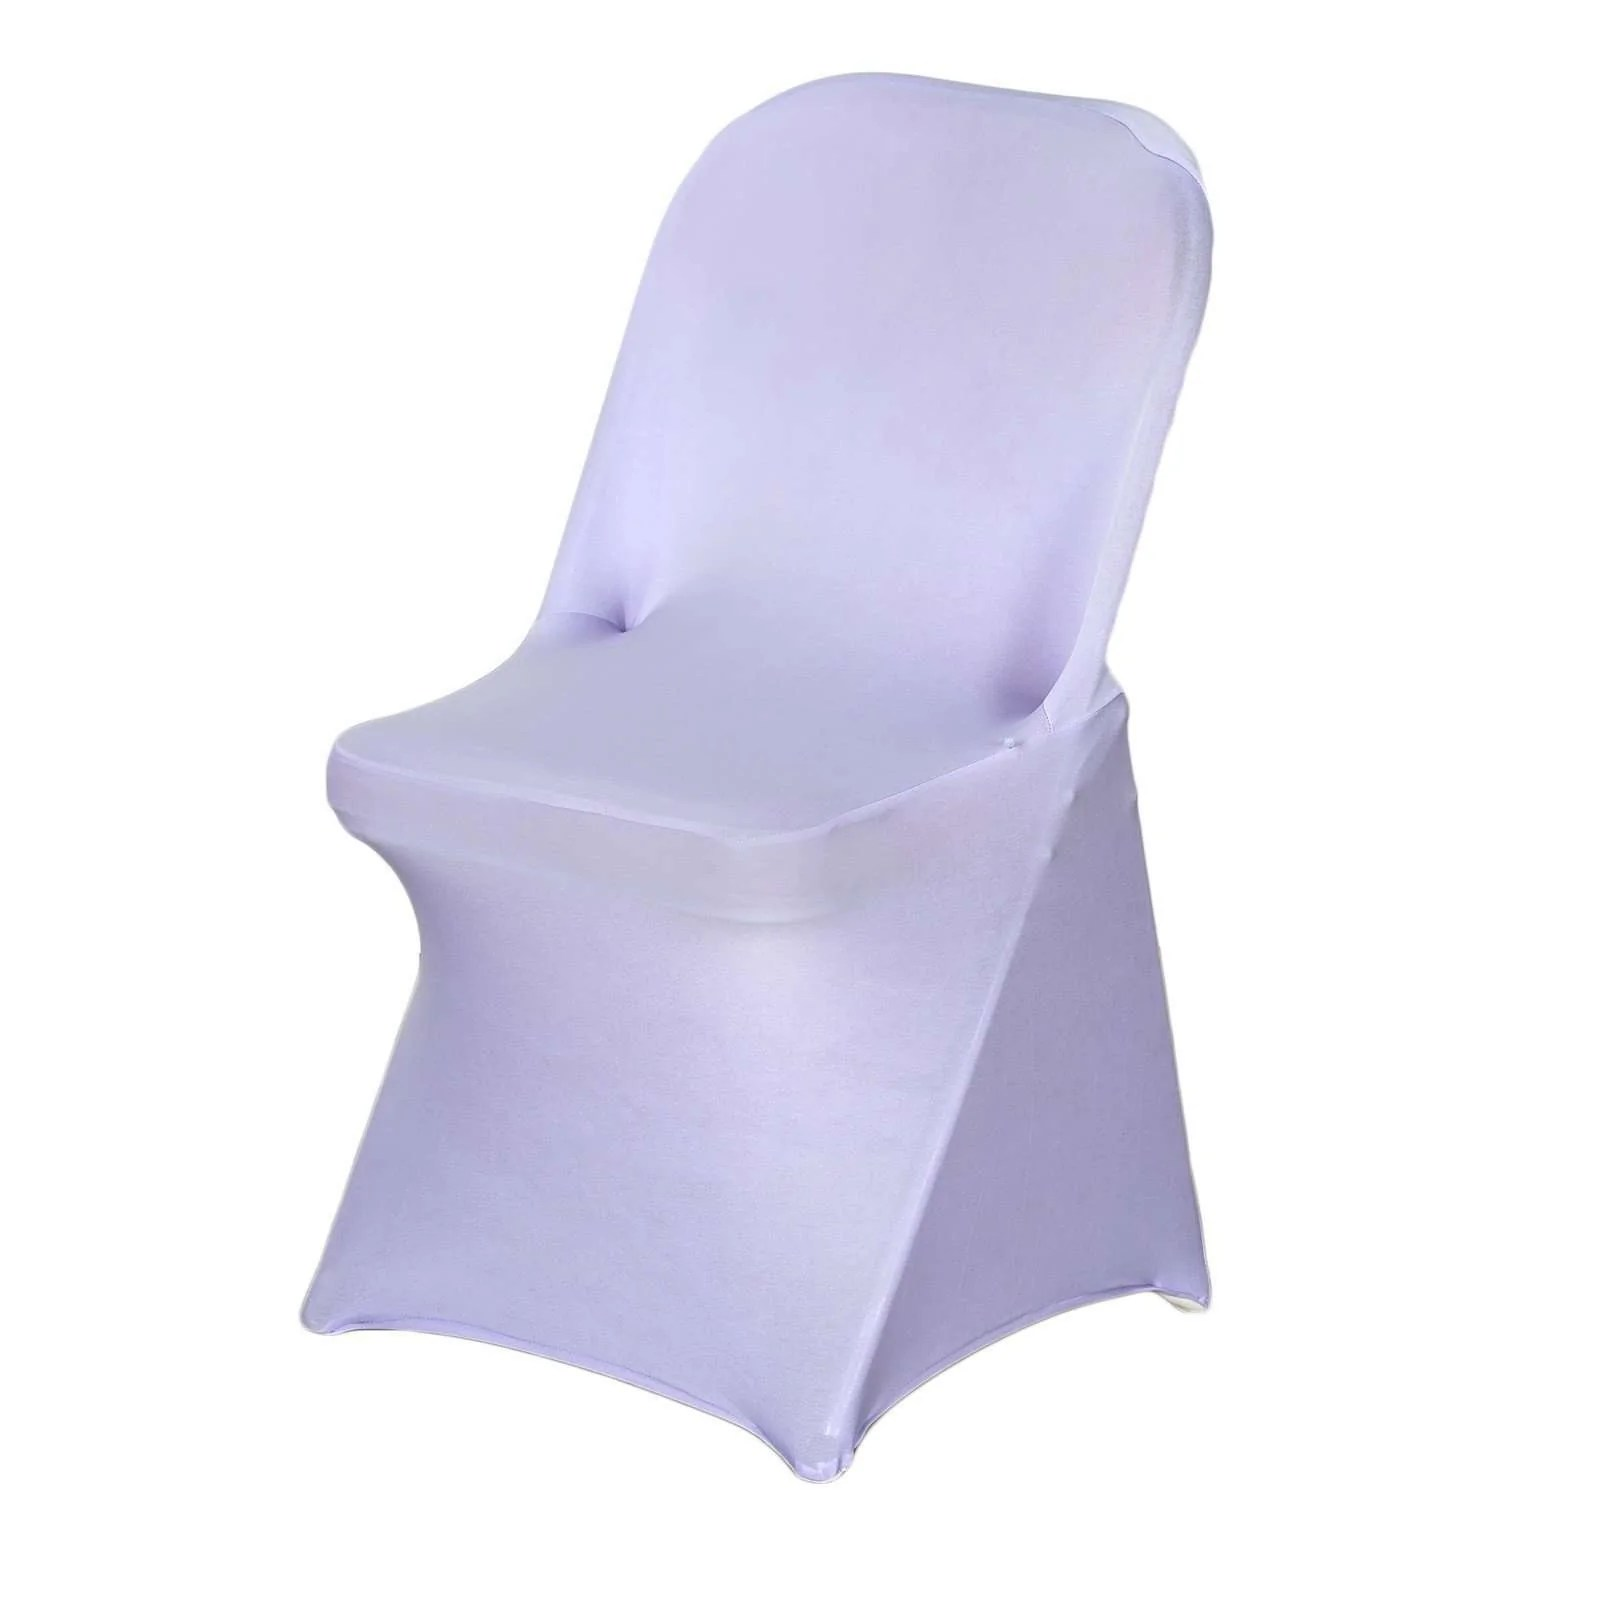 wholesale folding chair covers for sale fishing roving lavender spandex stretch cover wedding party